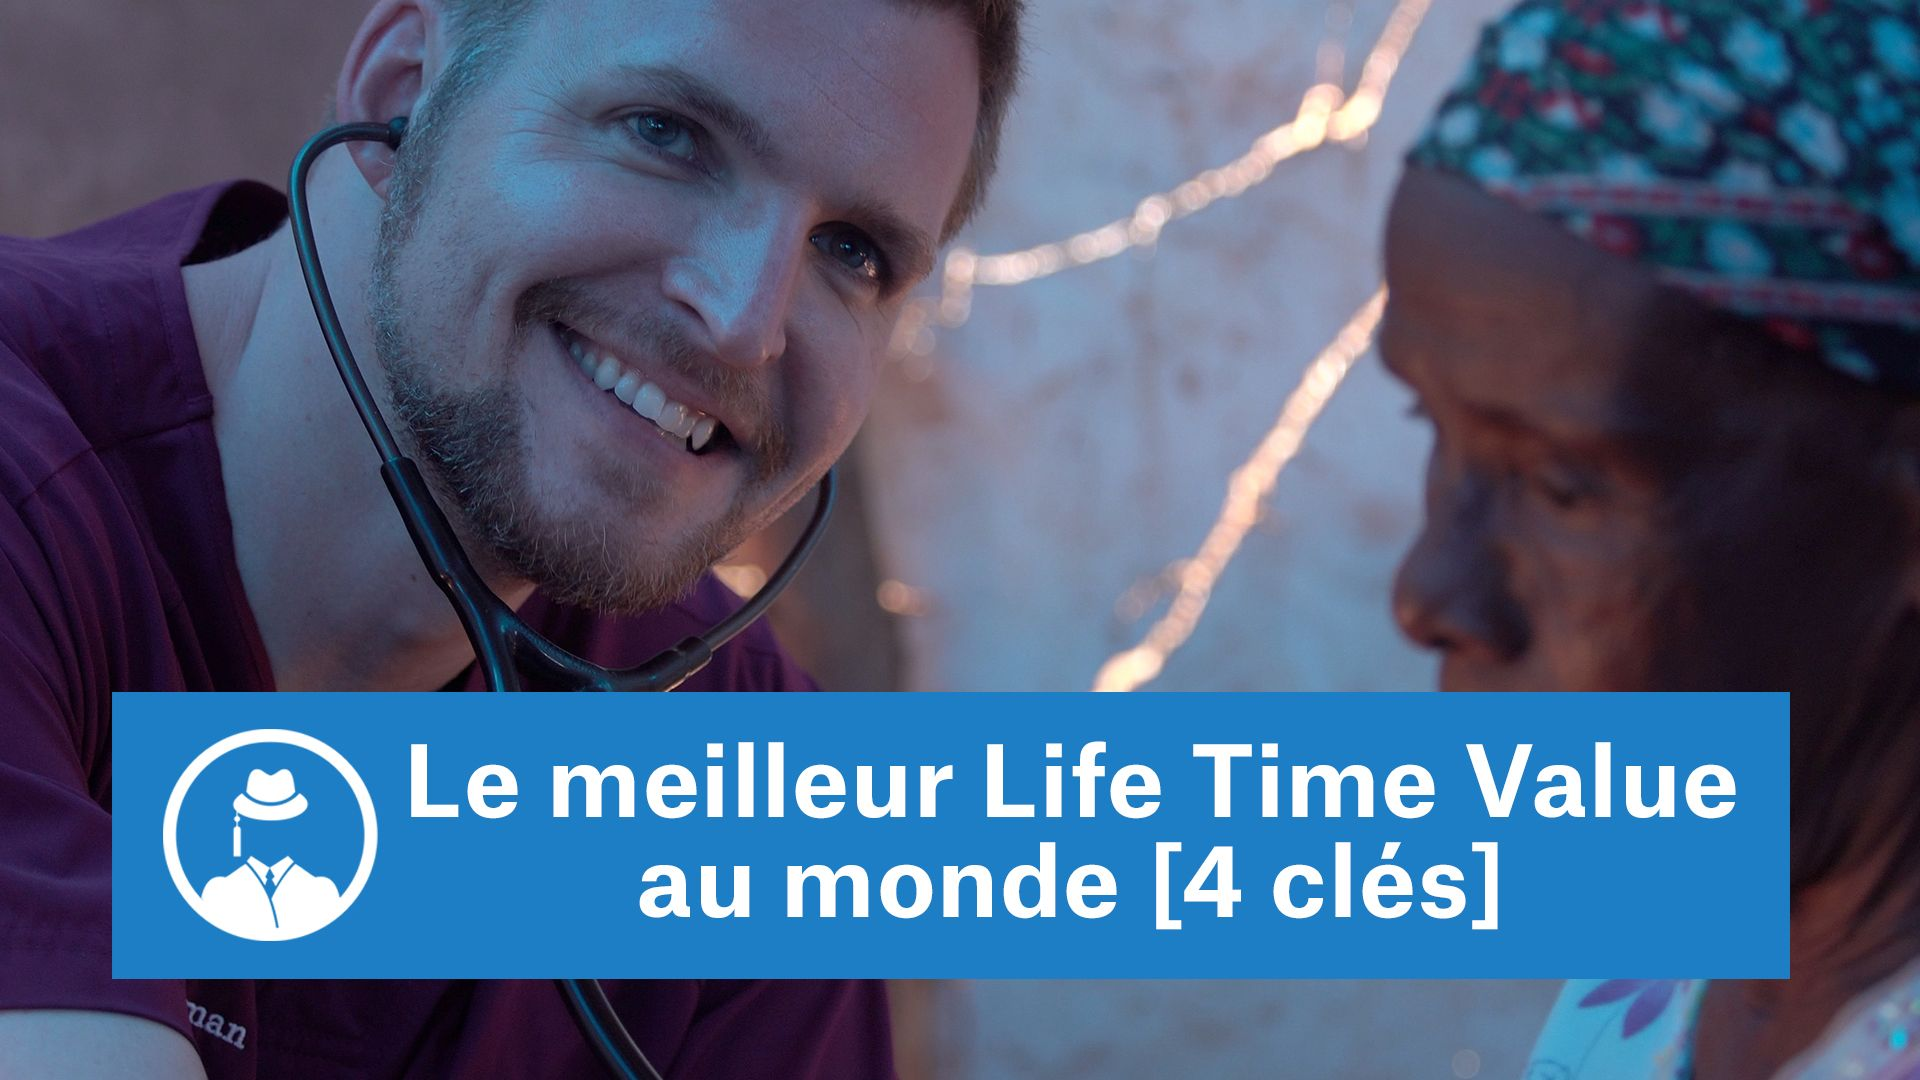 Le meilleur Life Time Value au monde [4 clés] #GrowthHacking #WebMarketing #FormationGrowthHacking #CentreDeFormationFrance #TunnelAARRR #AARRR #SocialMedia #CommunityManagement #SEO #MarketingDigital #Sit#LifeTimeValueeWeb